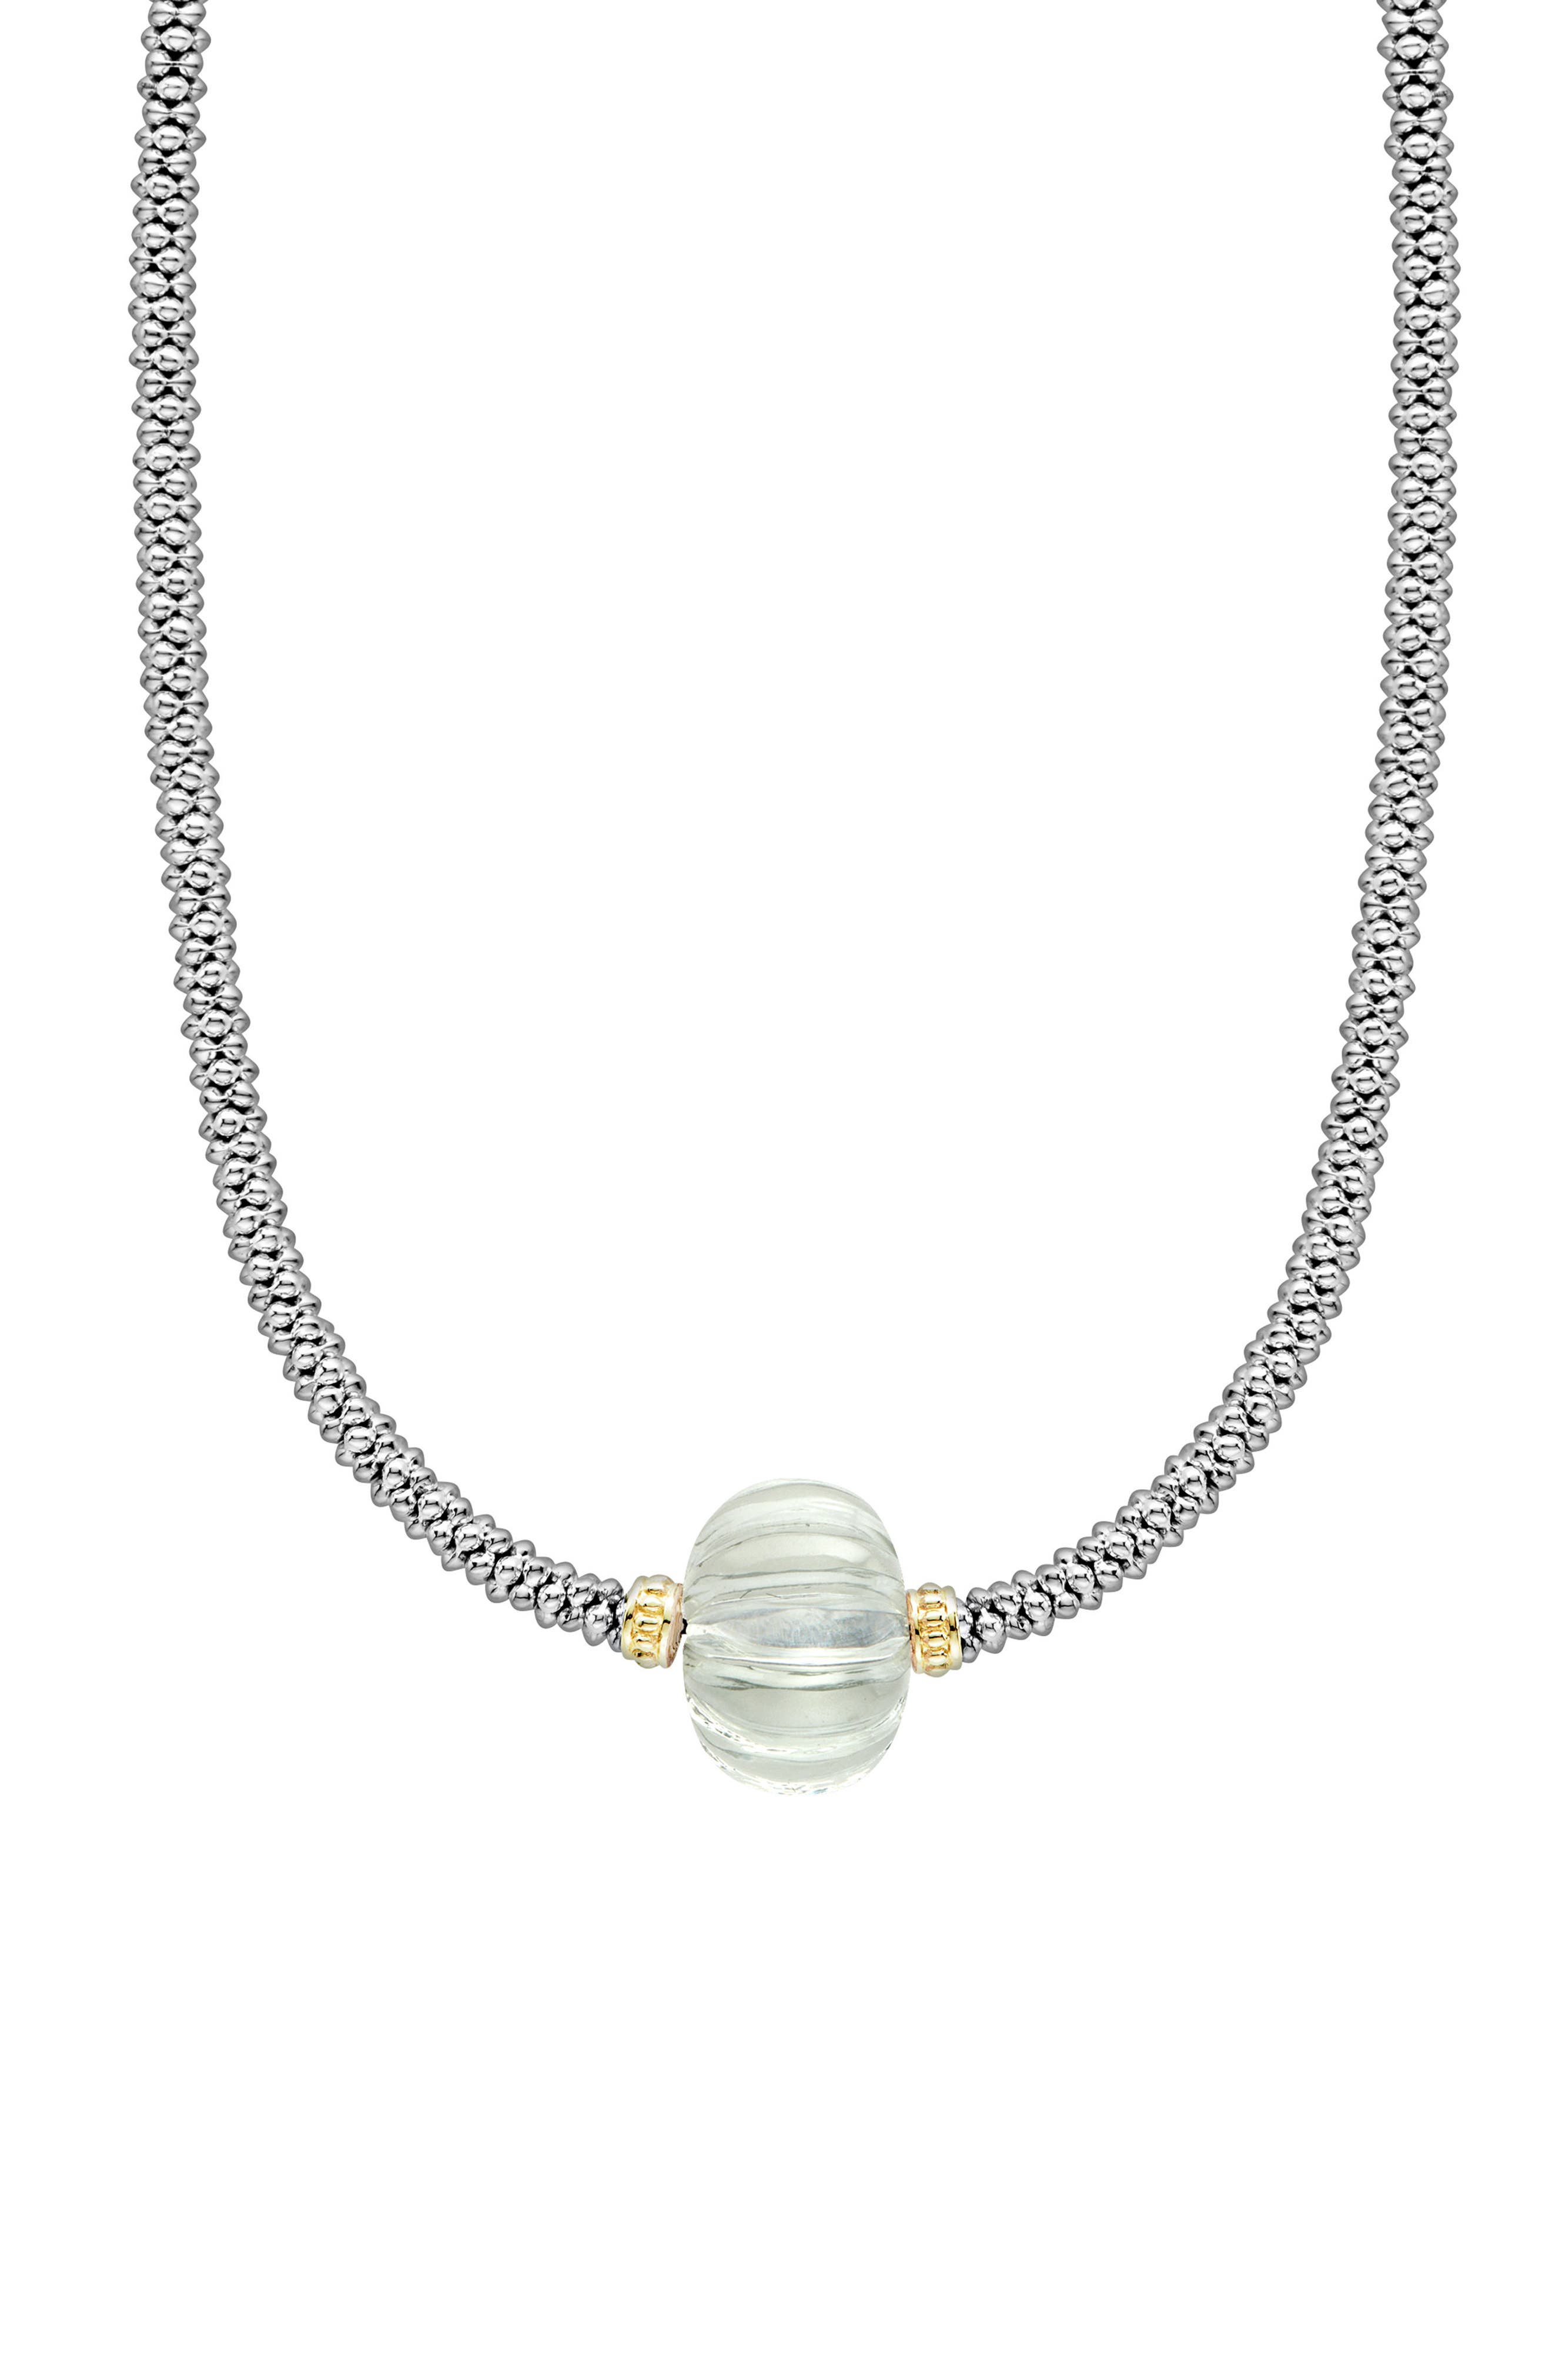 Caviar Forever Melon Bead Rope Necklace,                             Alternate thumbnail 2, color,                             300